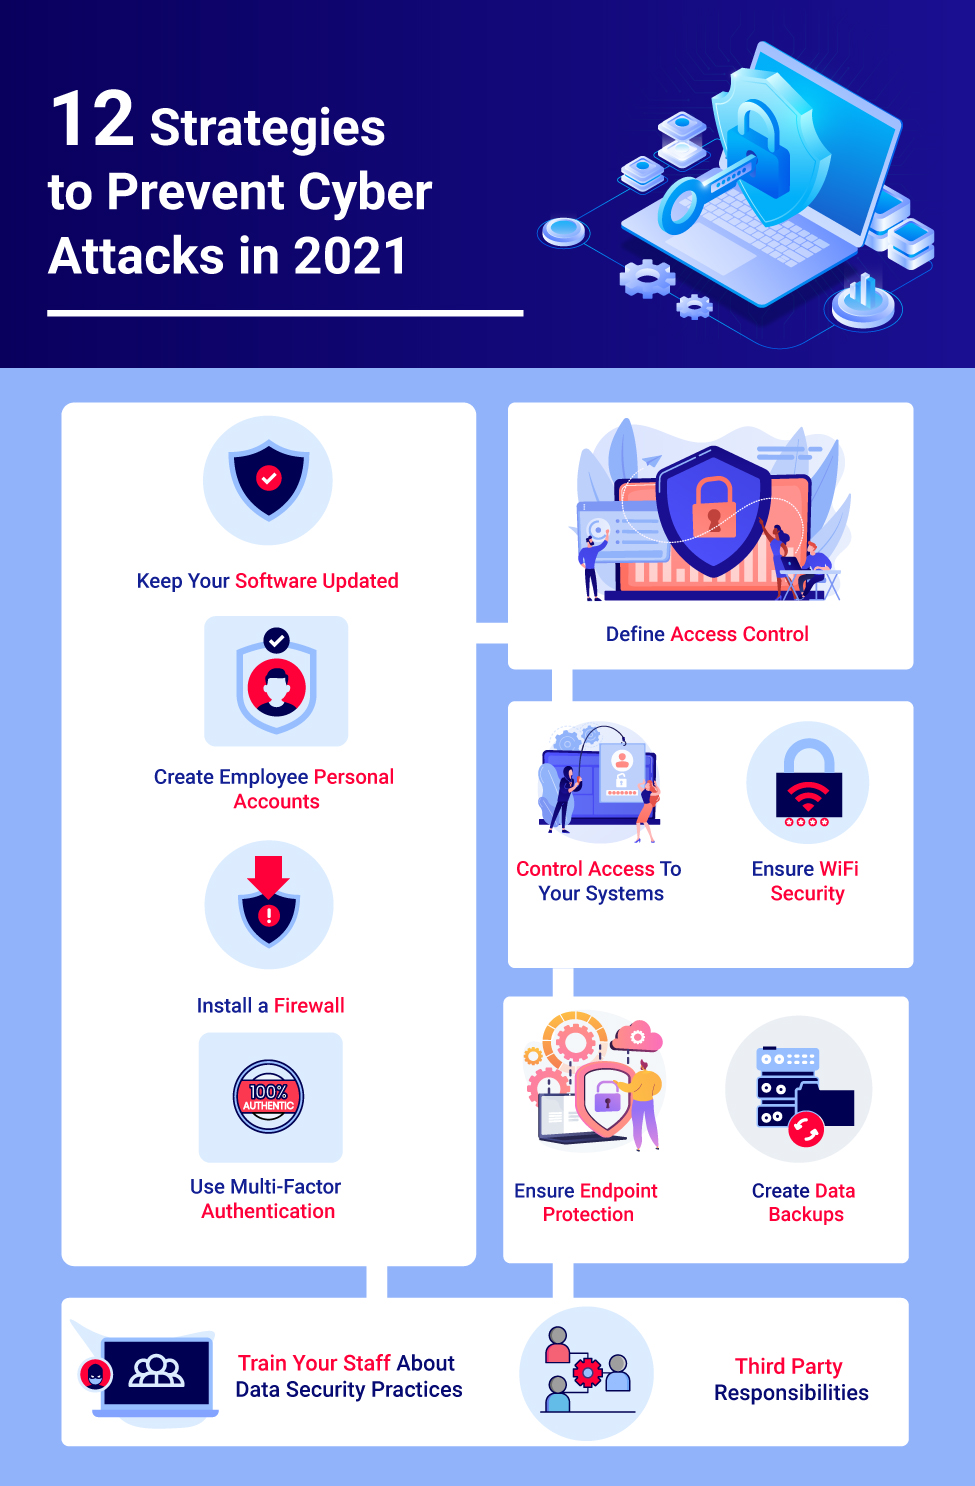 Strategies to Prevent Cyber Attacks in 2021